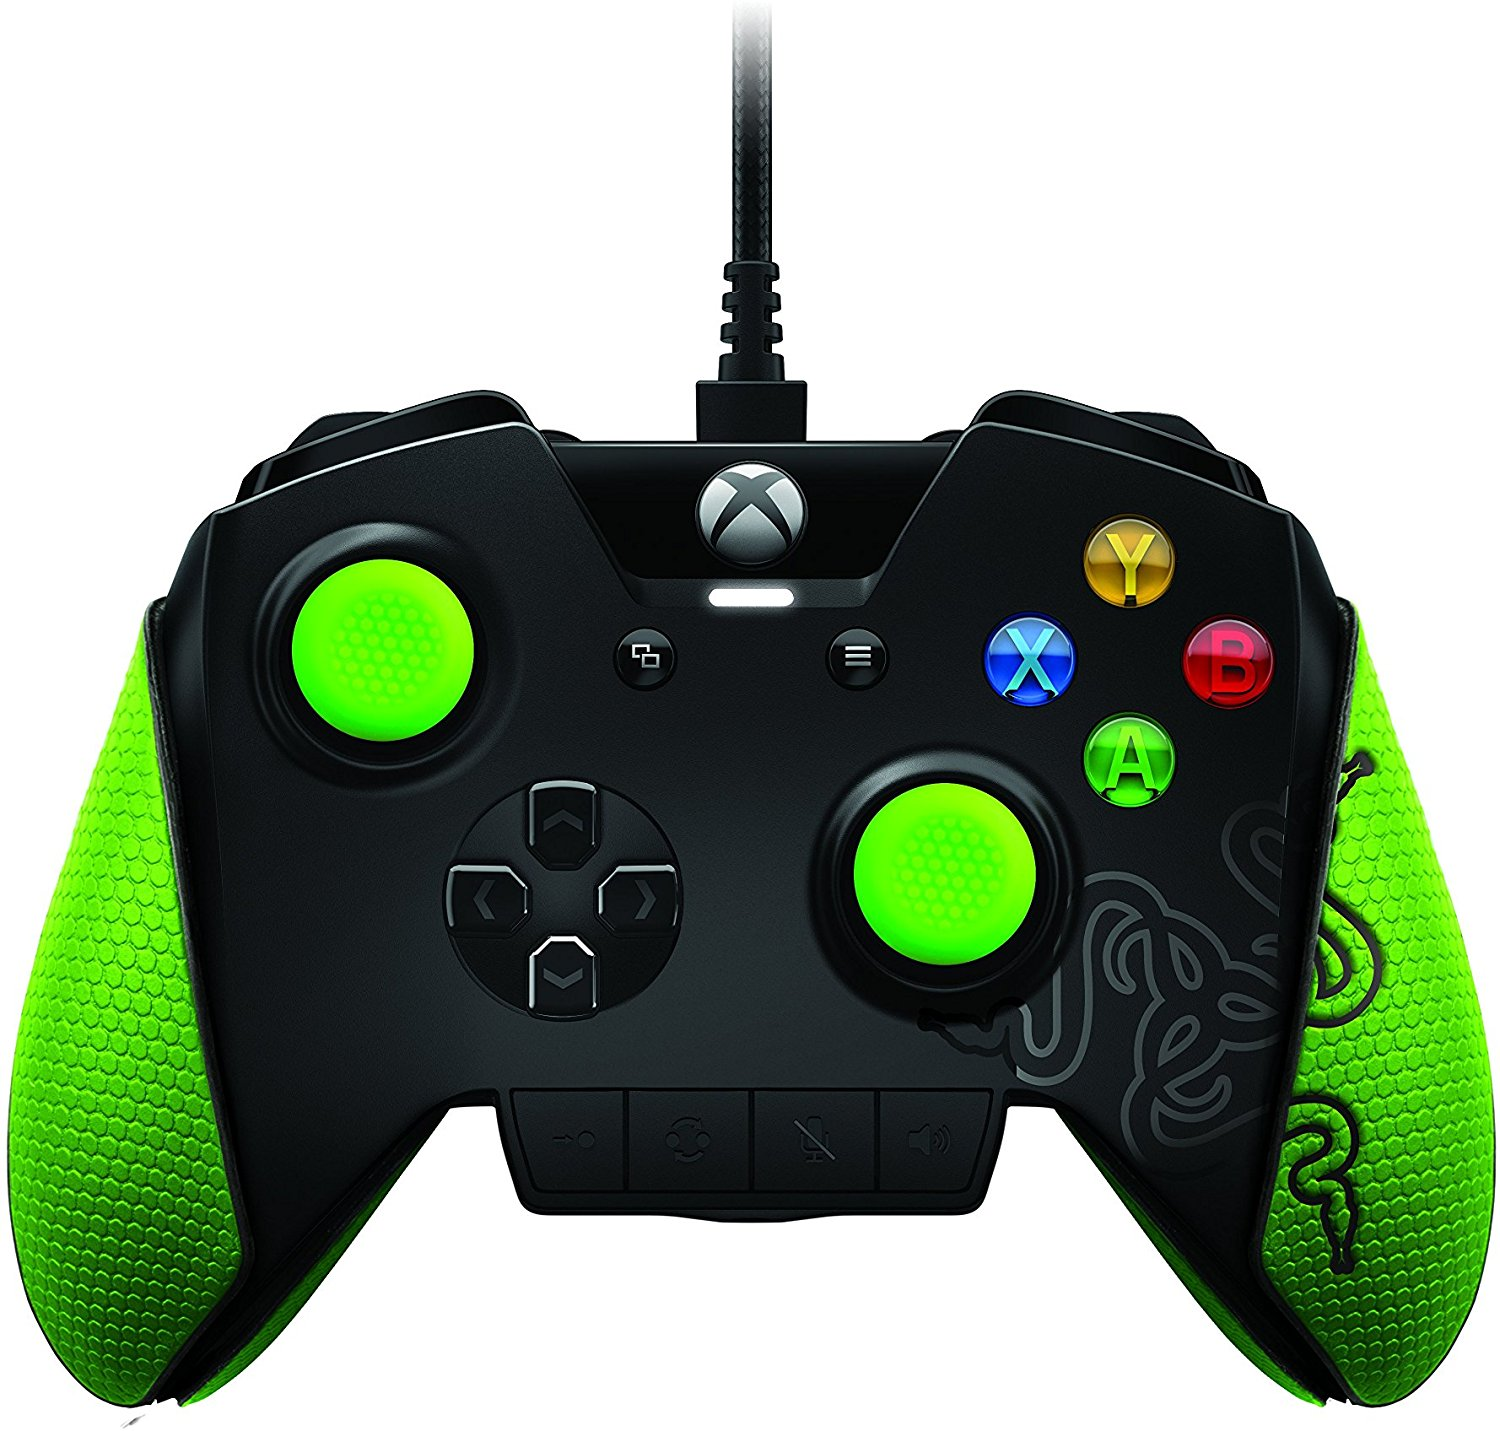 The Best Xbox One Controllers IGN